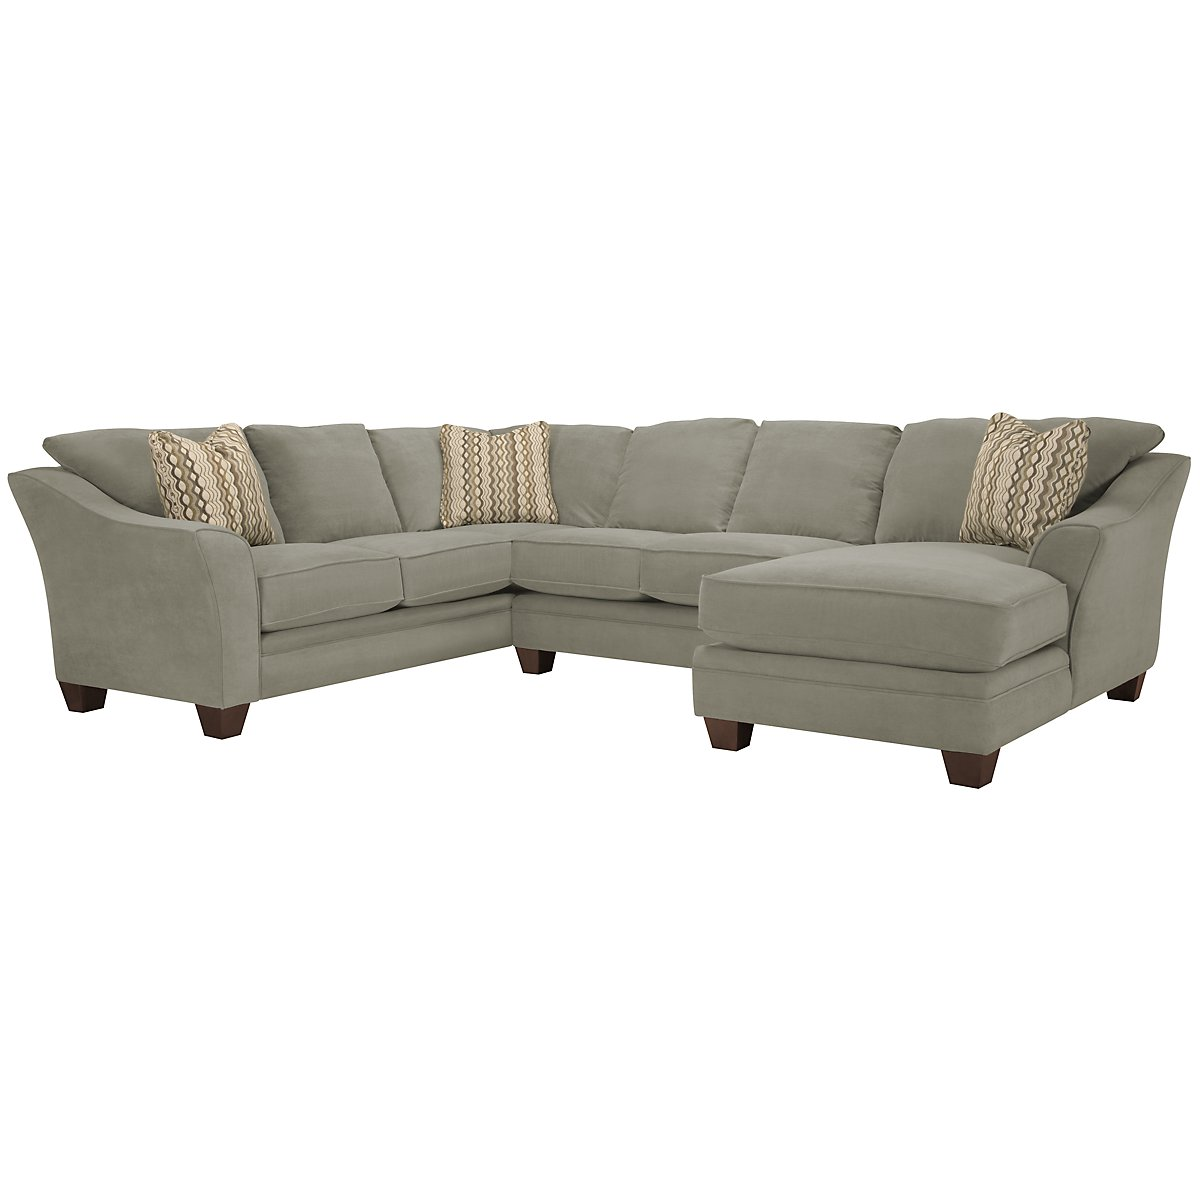 Grant2 Lt Green Microfiber Right Chaise Sectional